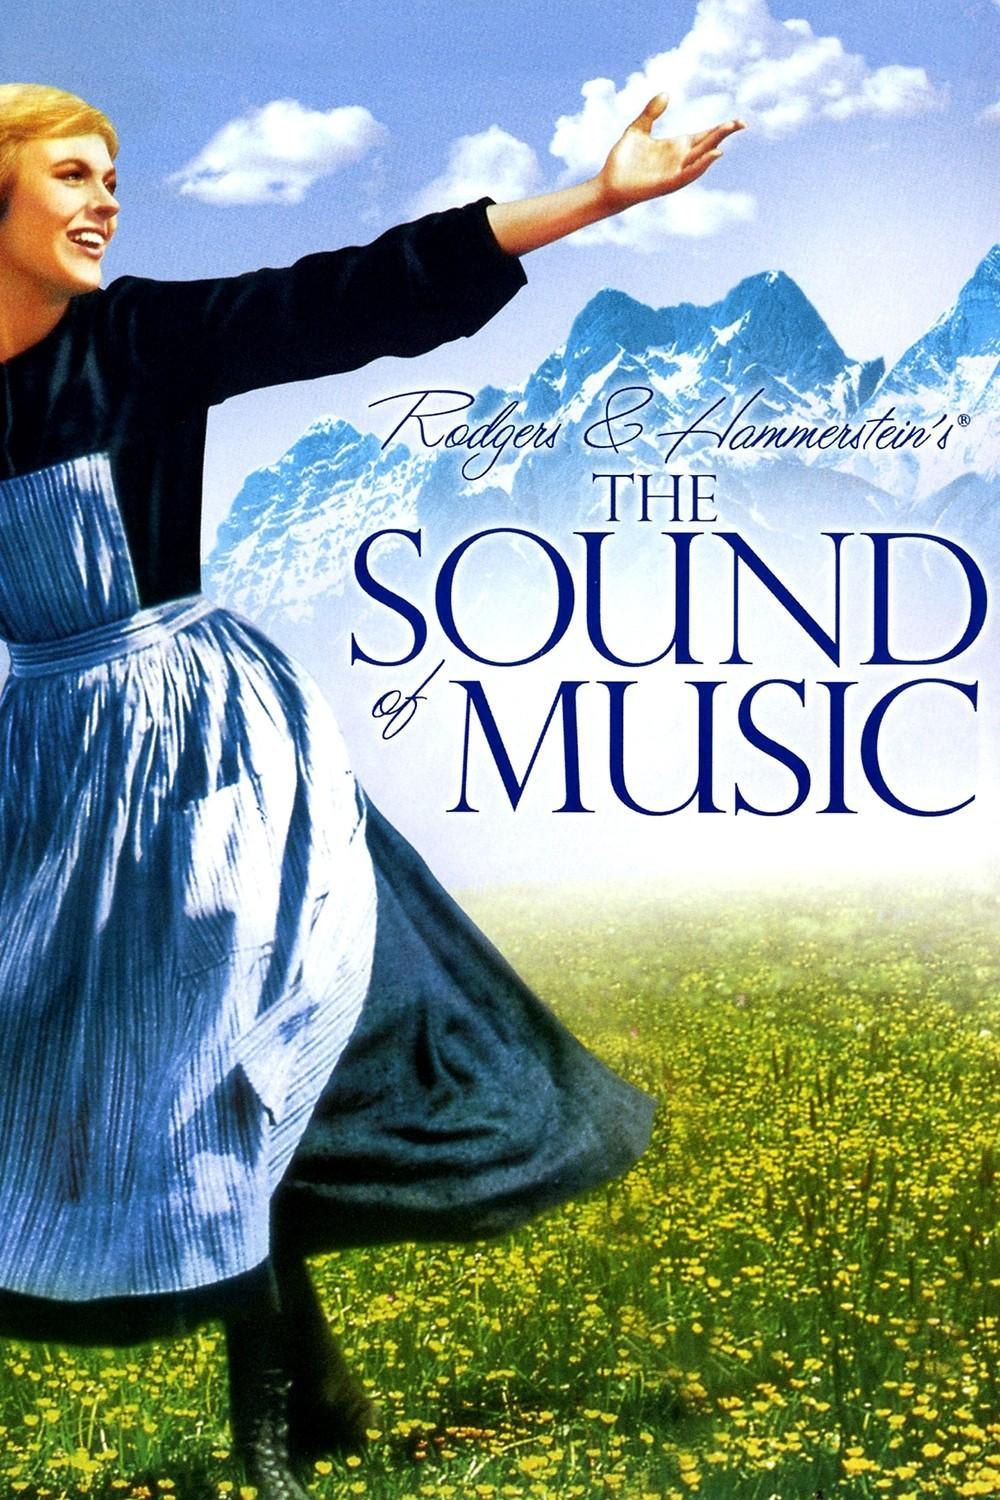 Sound Of Music movie posters at movie poster warehouse